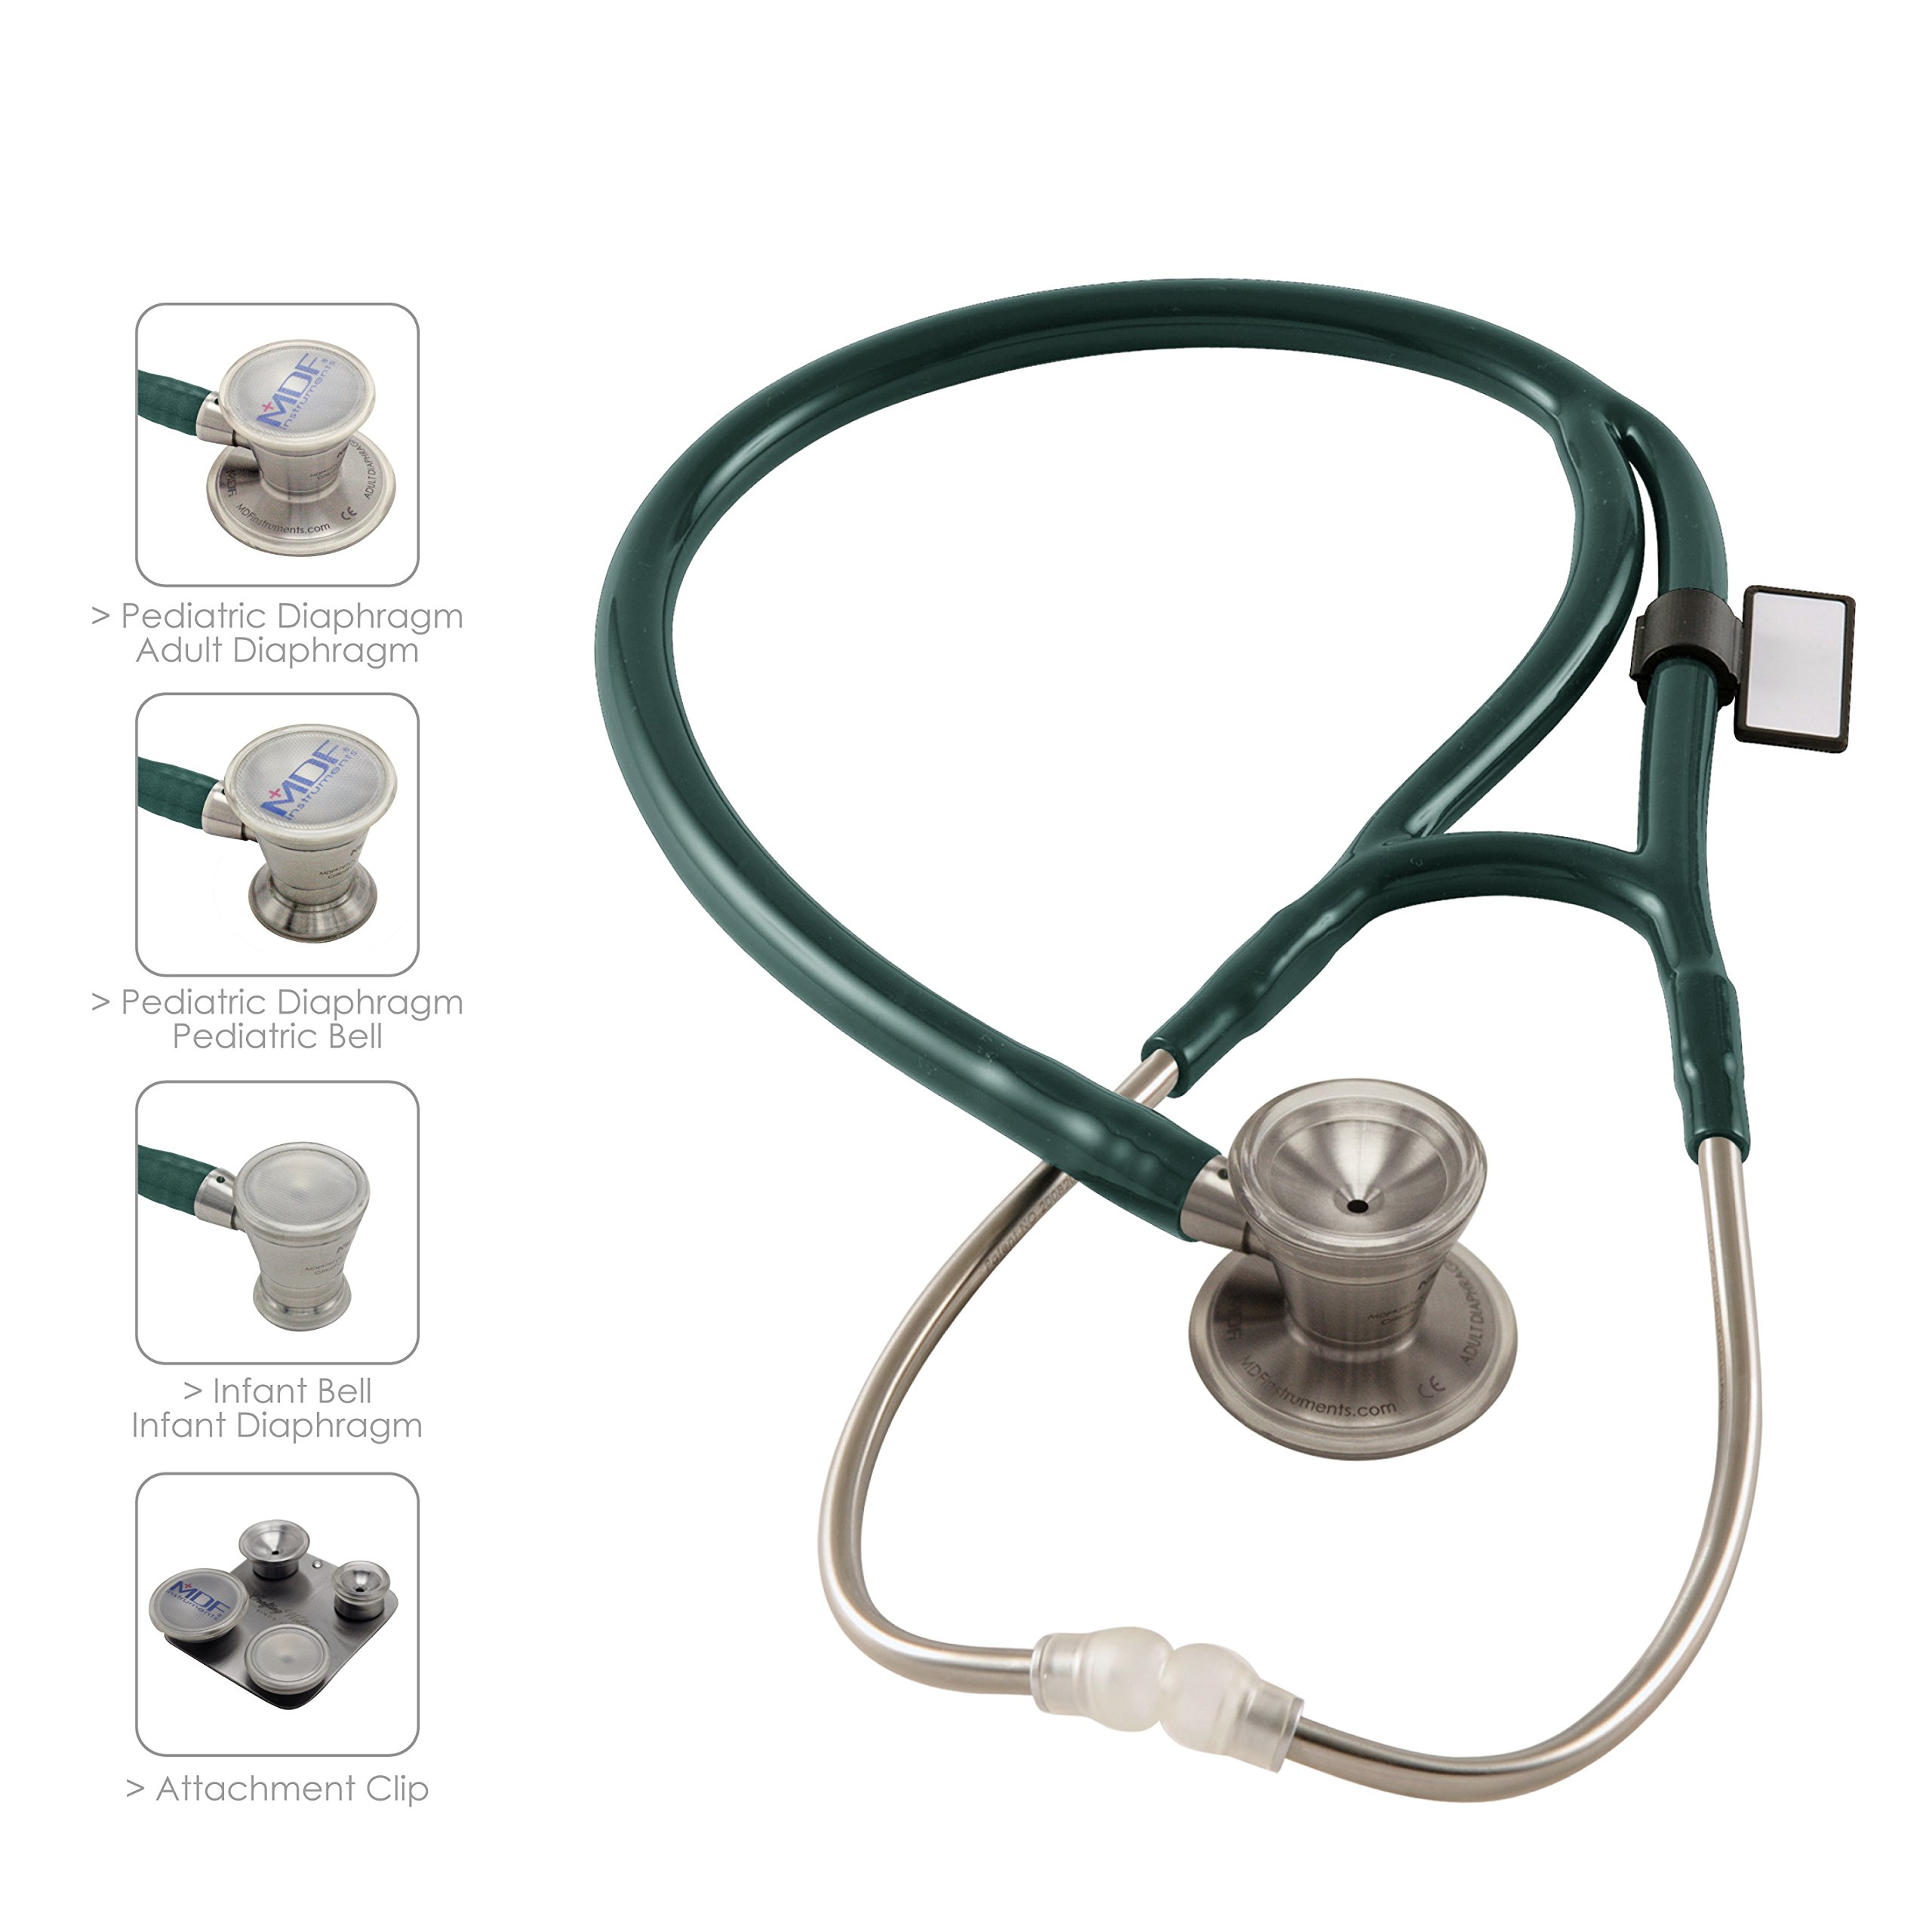 MDF ProCardial C3 Cardiology Stainless Steel Dual Head Stethoscope with Adult, Pediatric, and Infant-Neonatal convertible chestpiece - Emerald Green (MDF797CC-21)